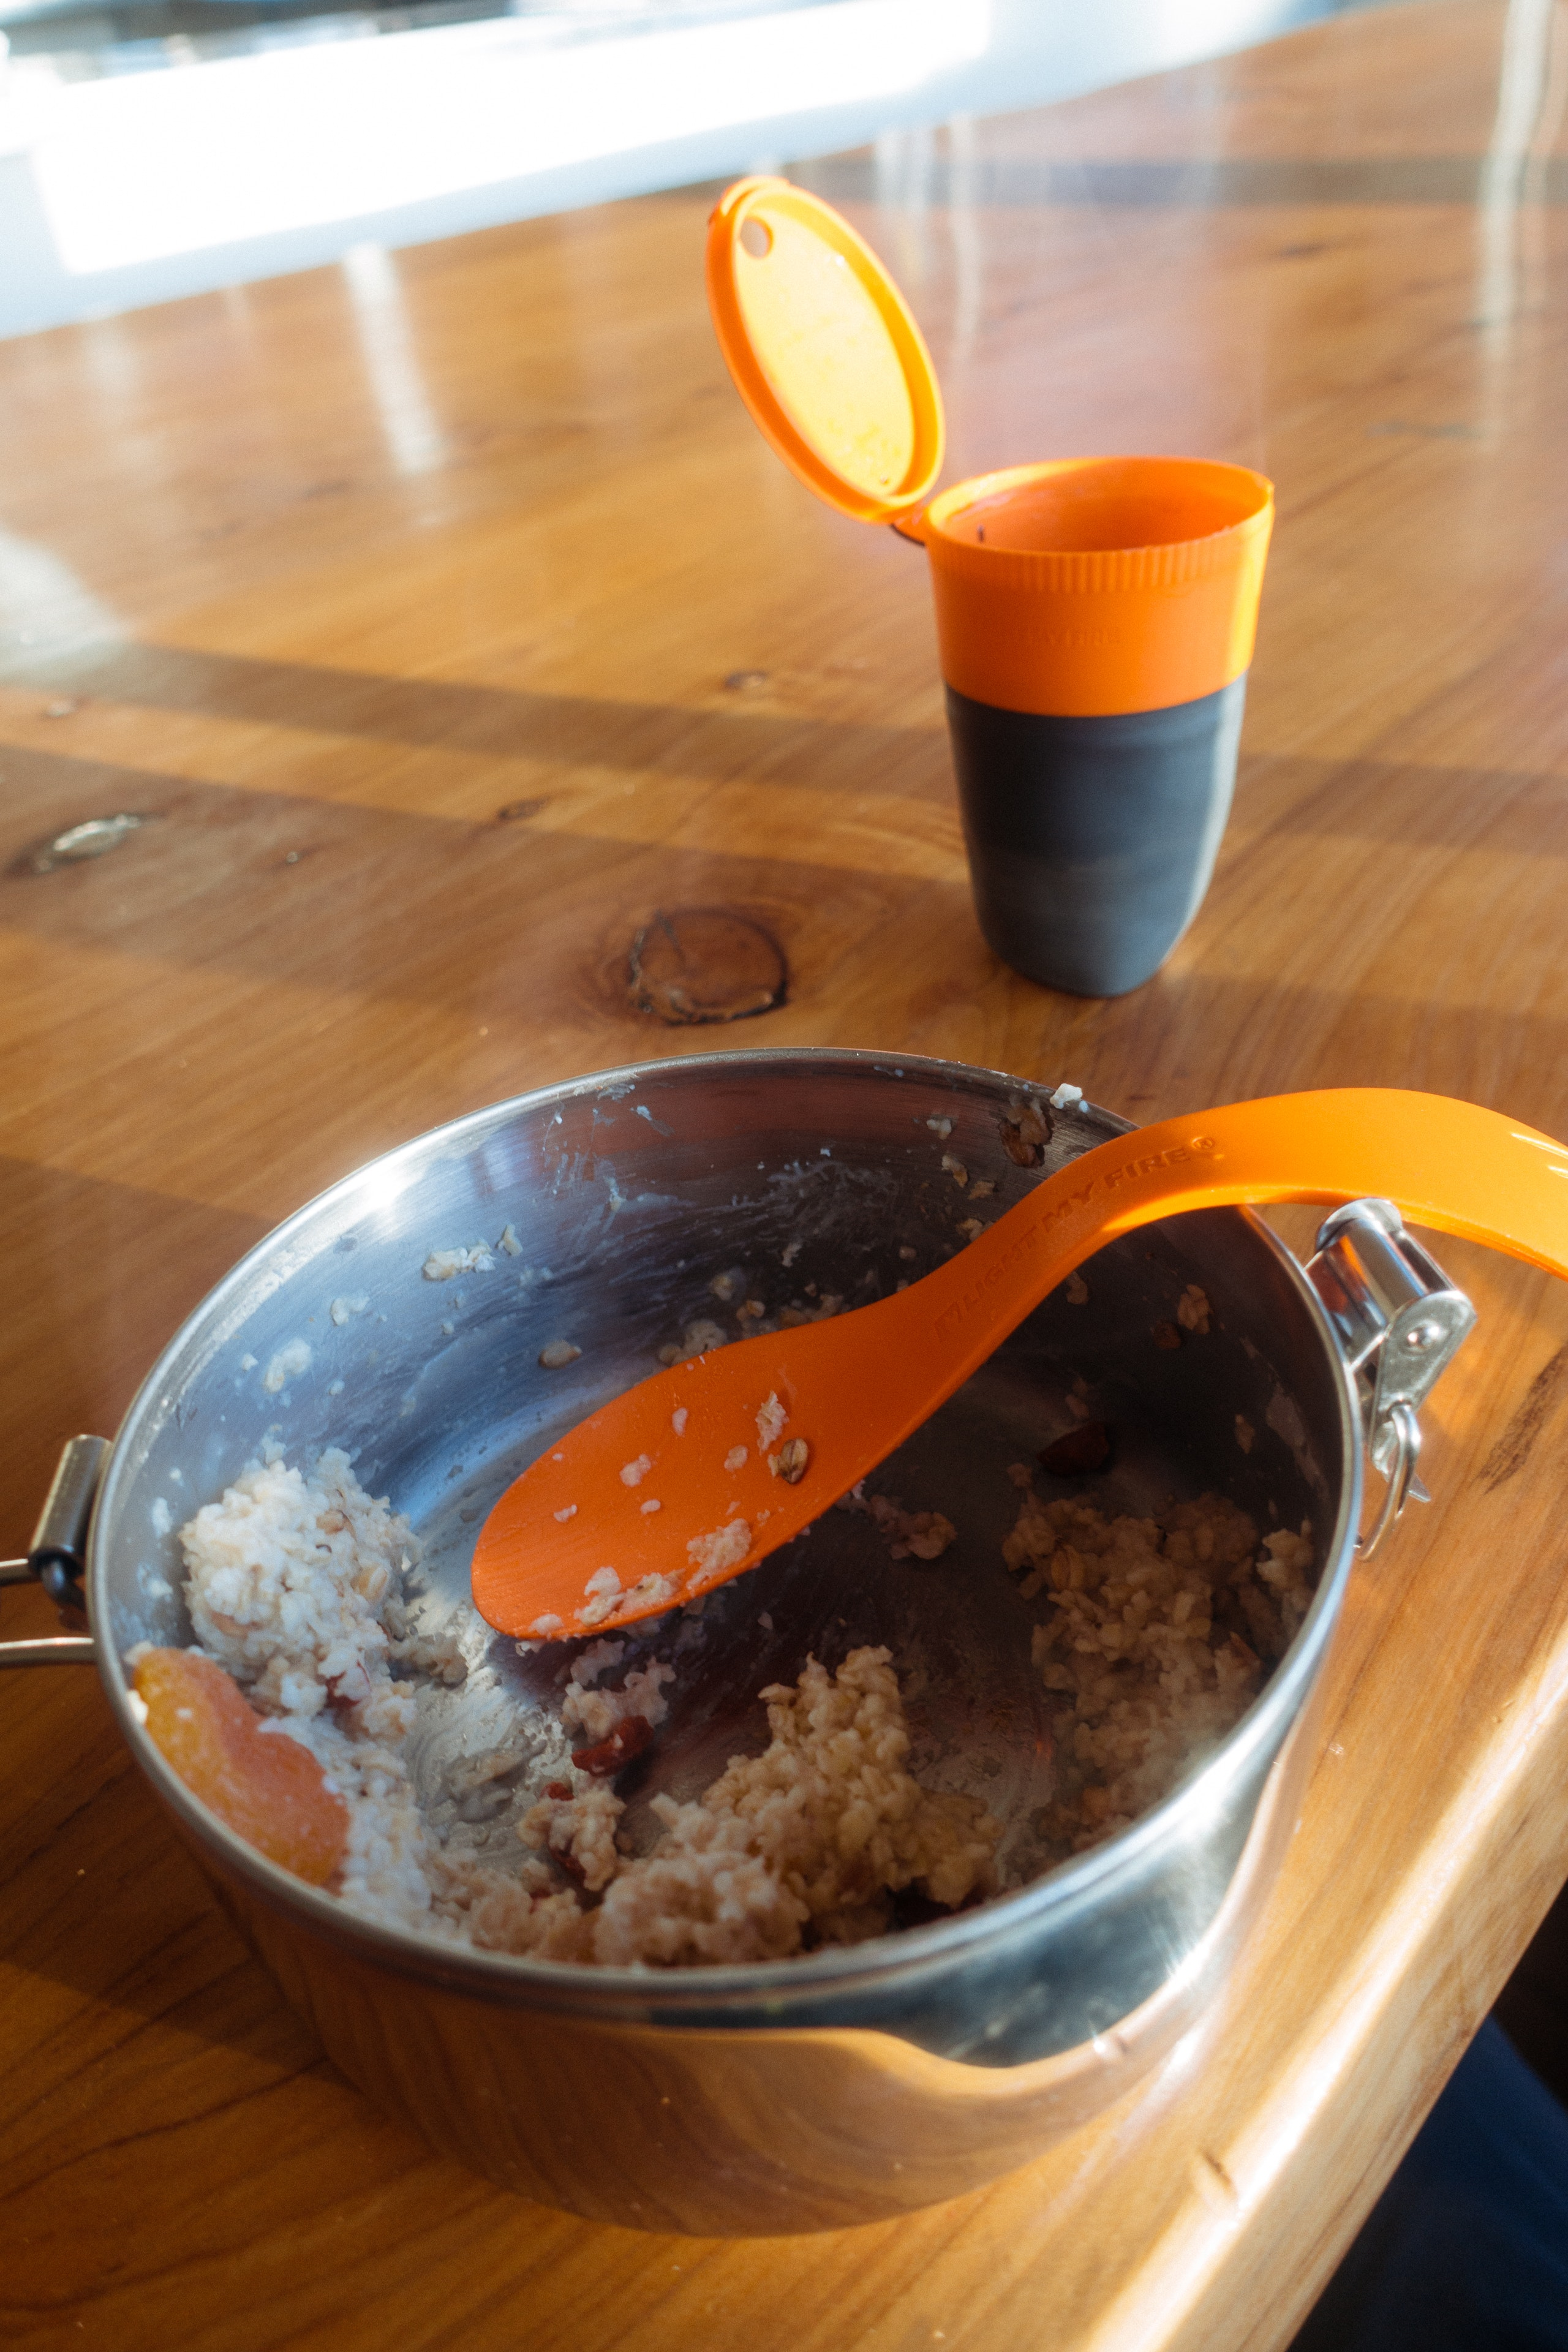 A breakfast of porridge with a spork from a camping pan